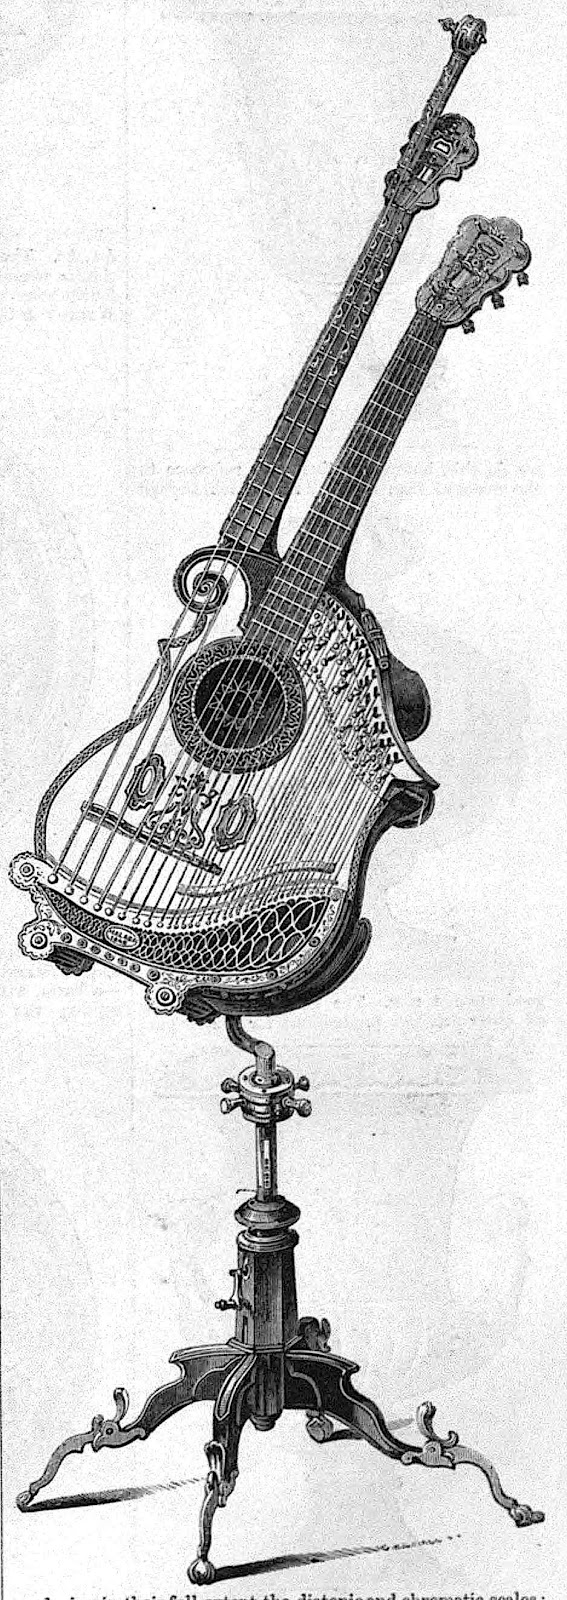 An 1851 doubleneck stringed instrument